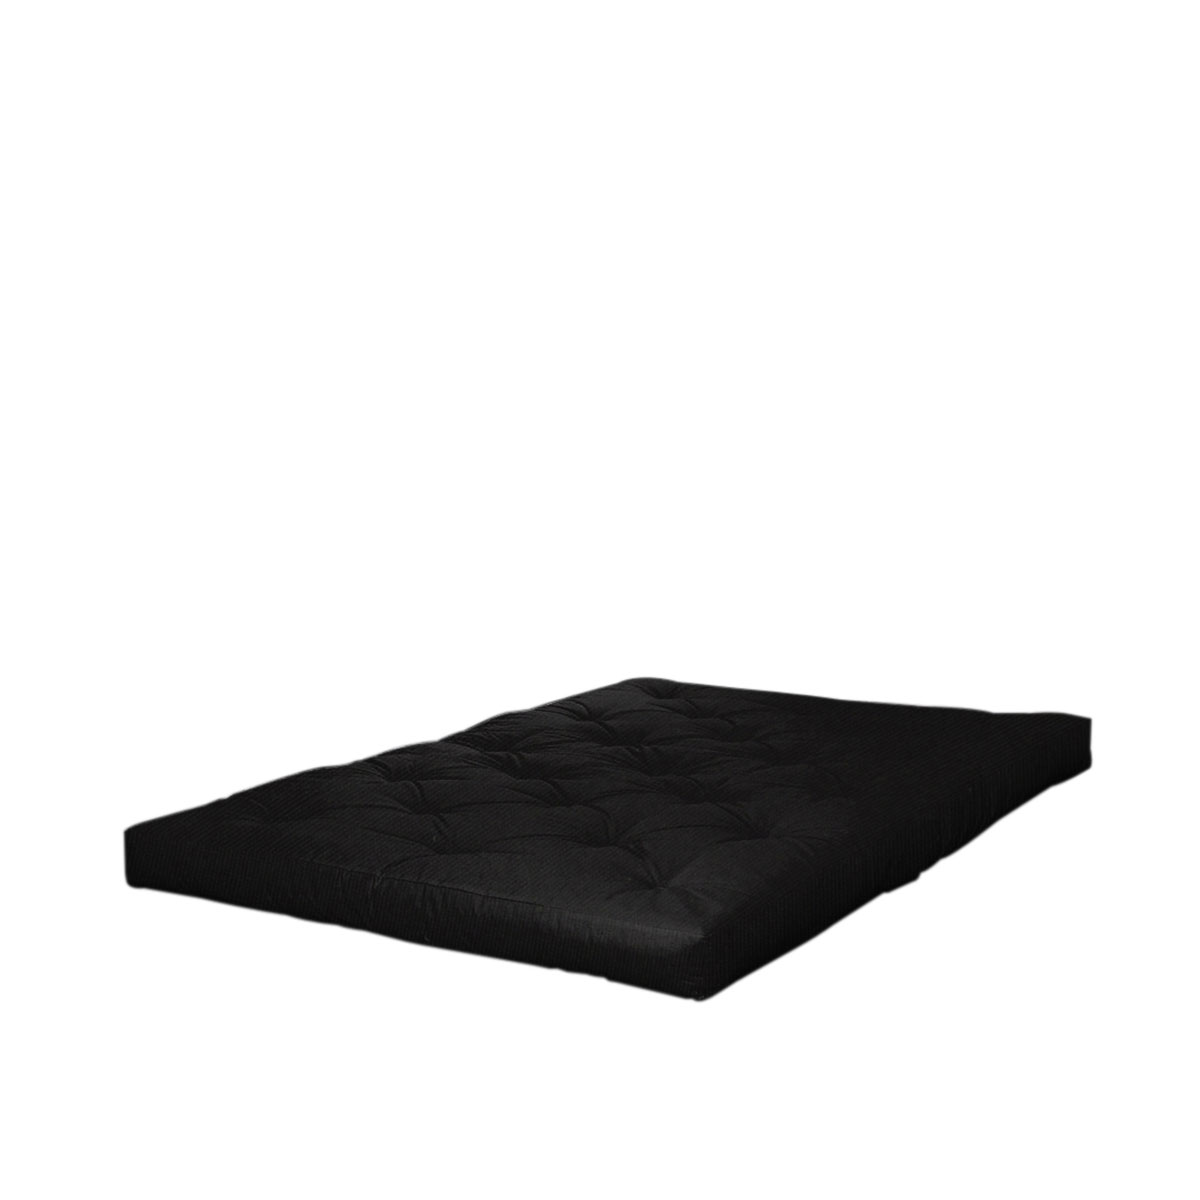 KARUP DESIGN Futon matrace Comfort 80 – Black